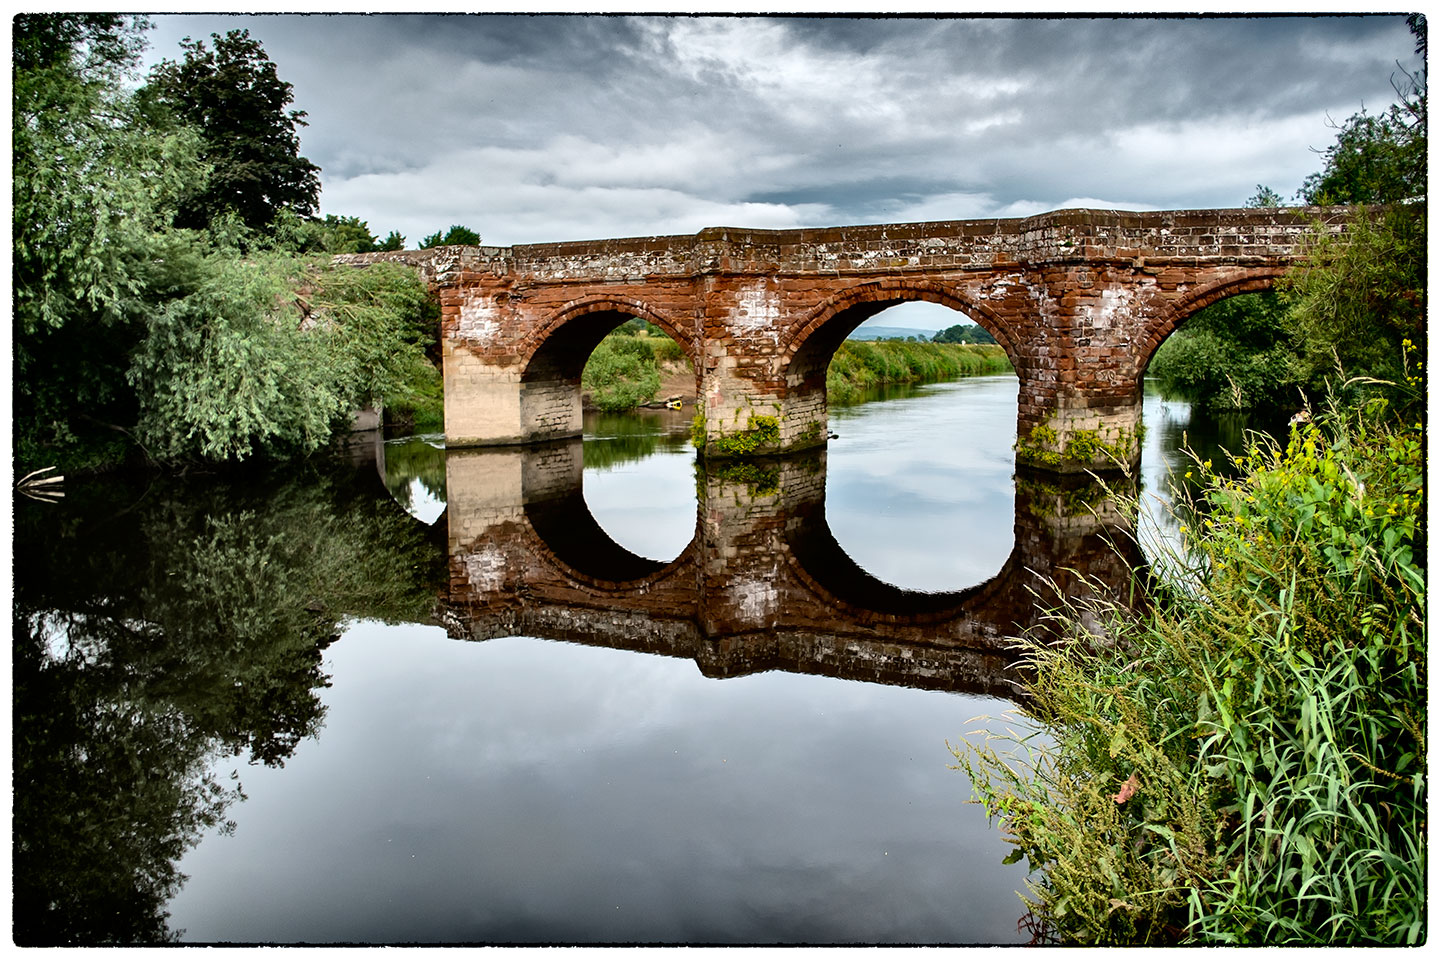 Road bridge over the River Dee at Farndon this morning after dropping Alice off at work.